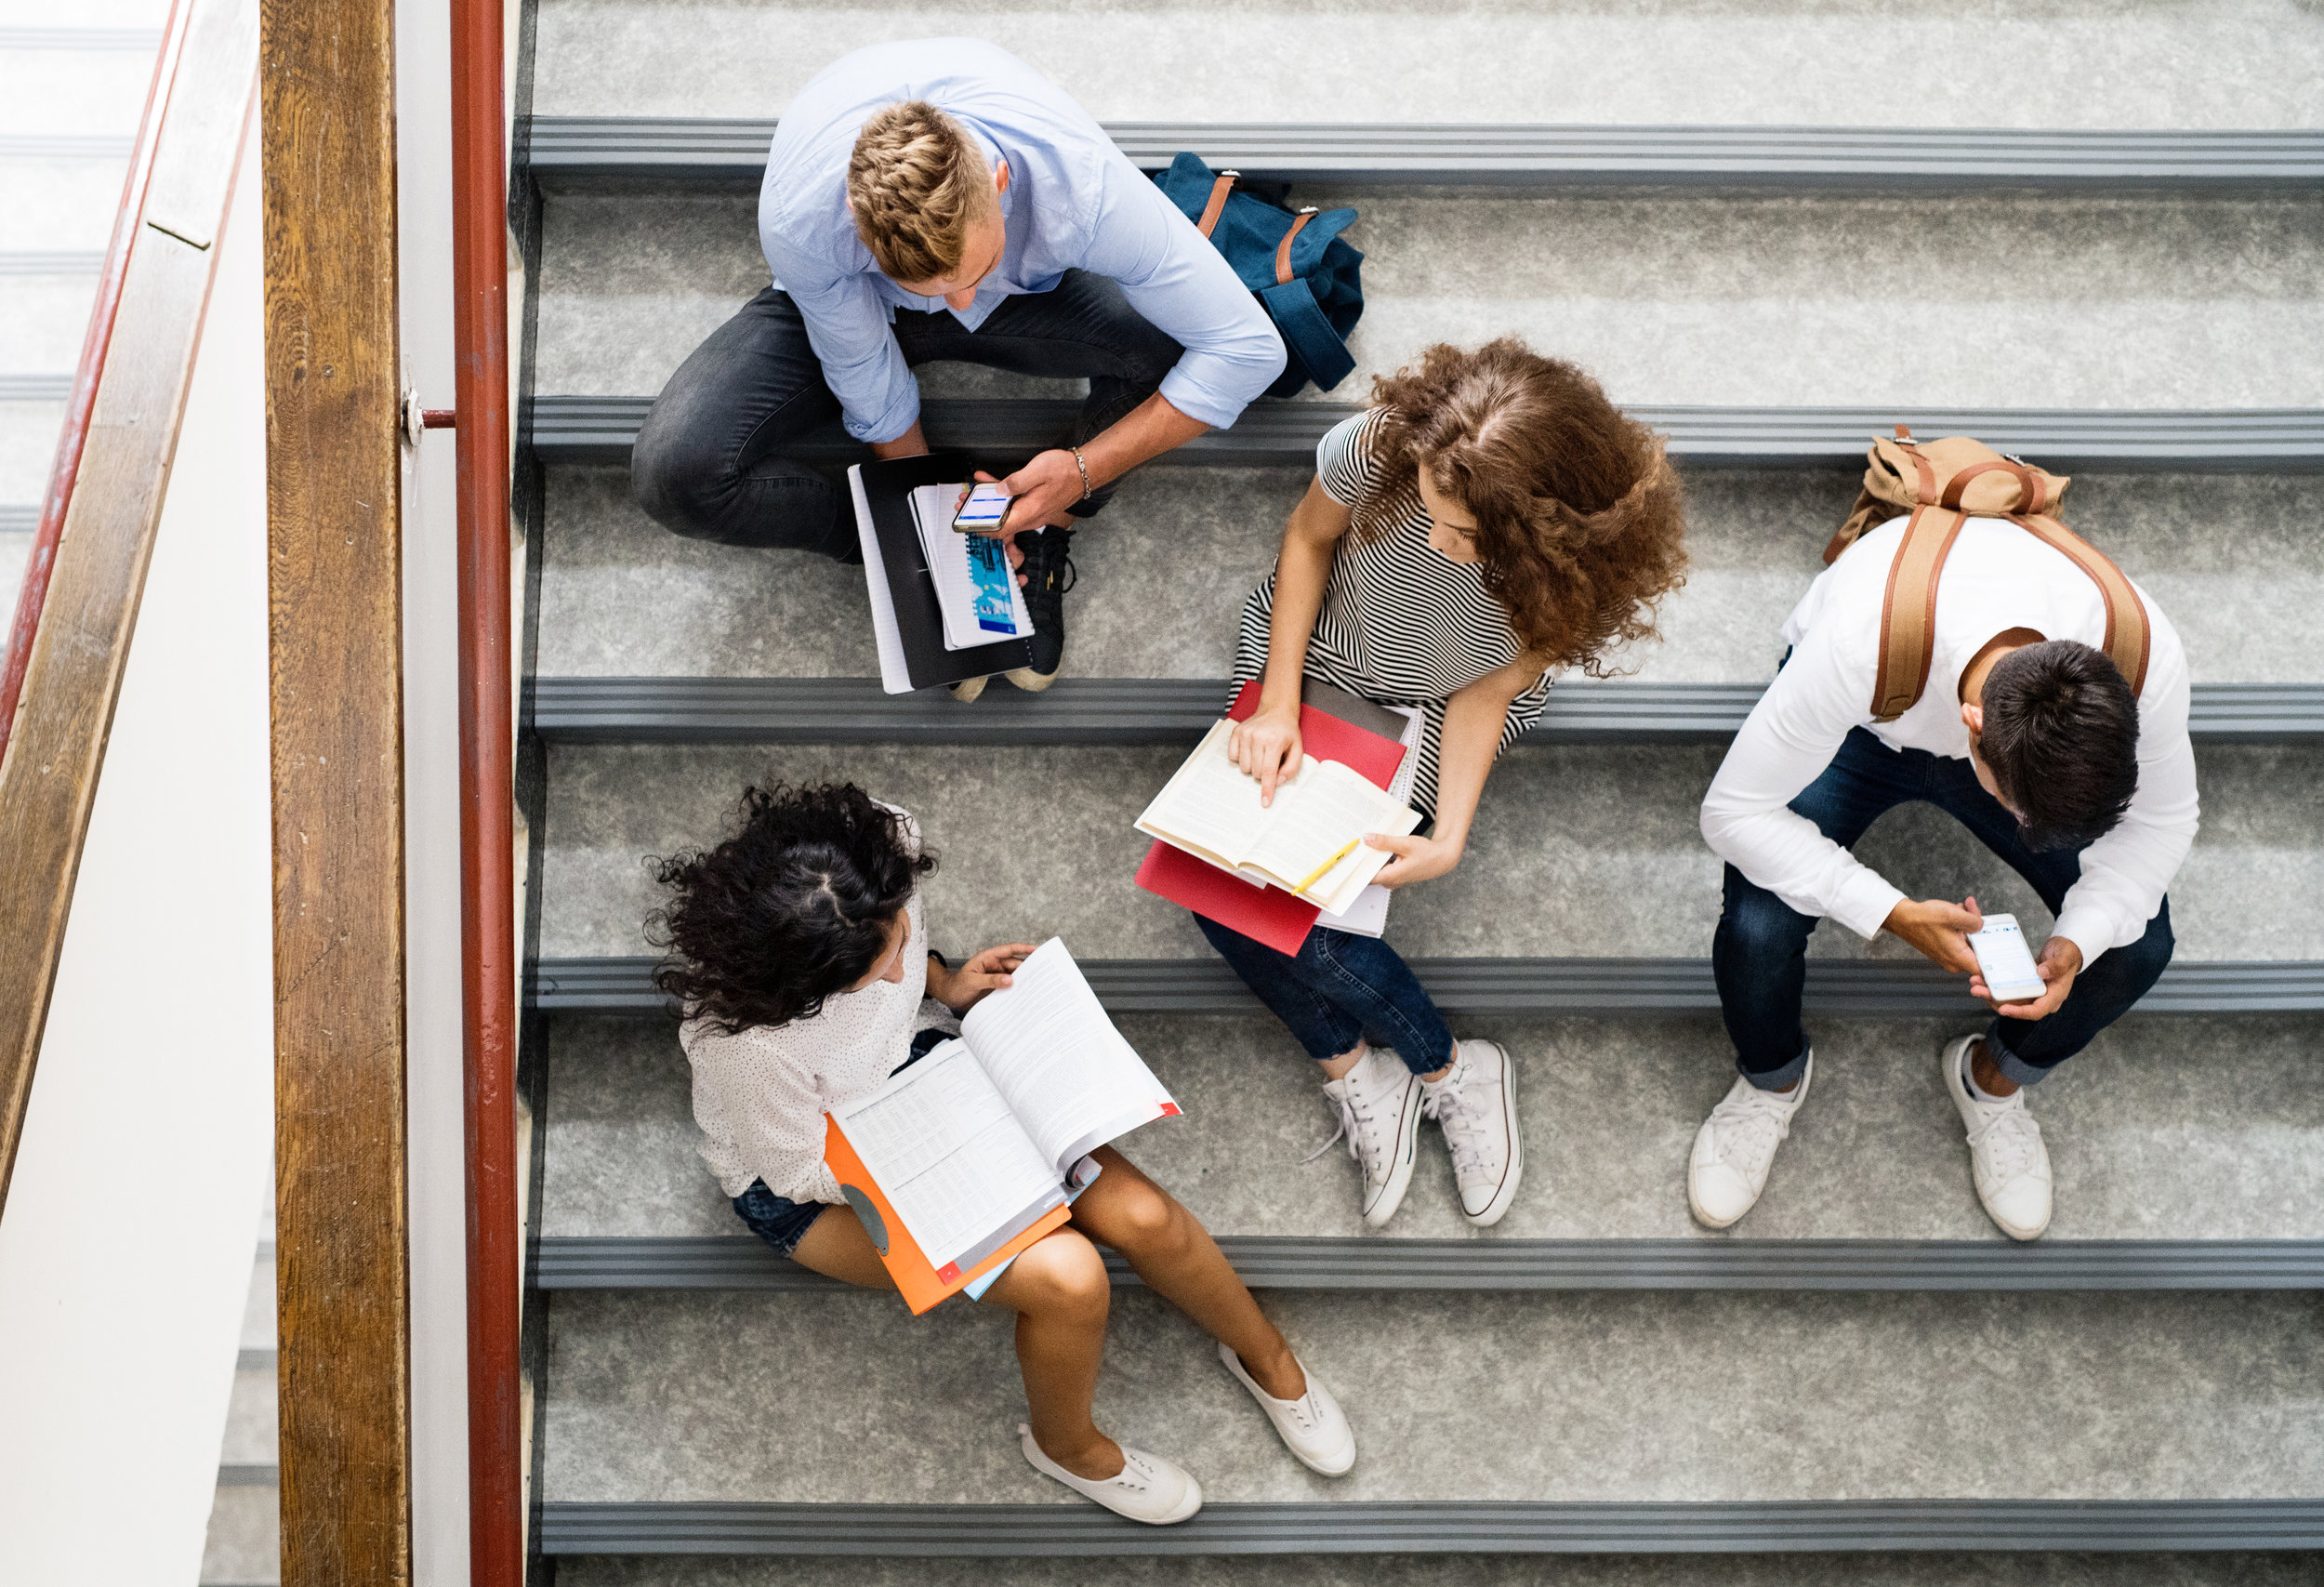 teenage-students-on-stairs-in-high-school-PCE32JX.jpg